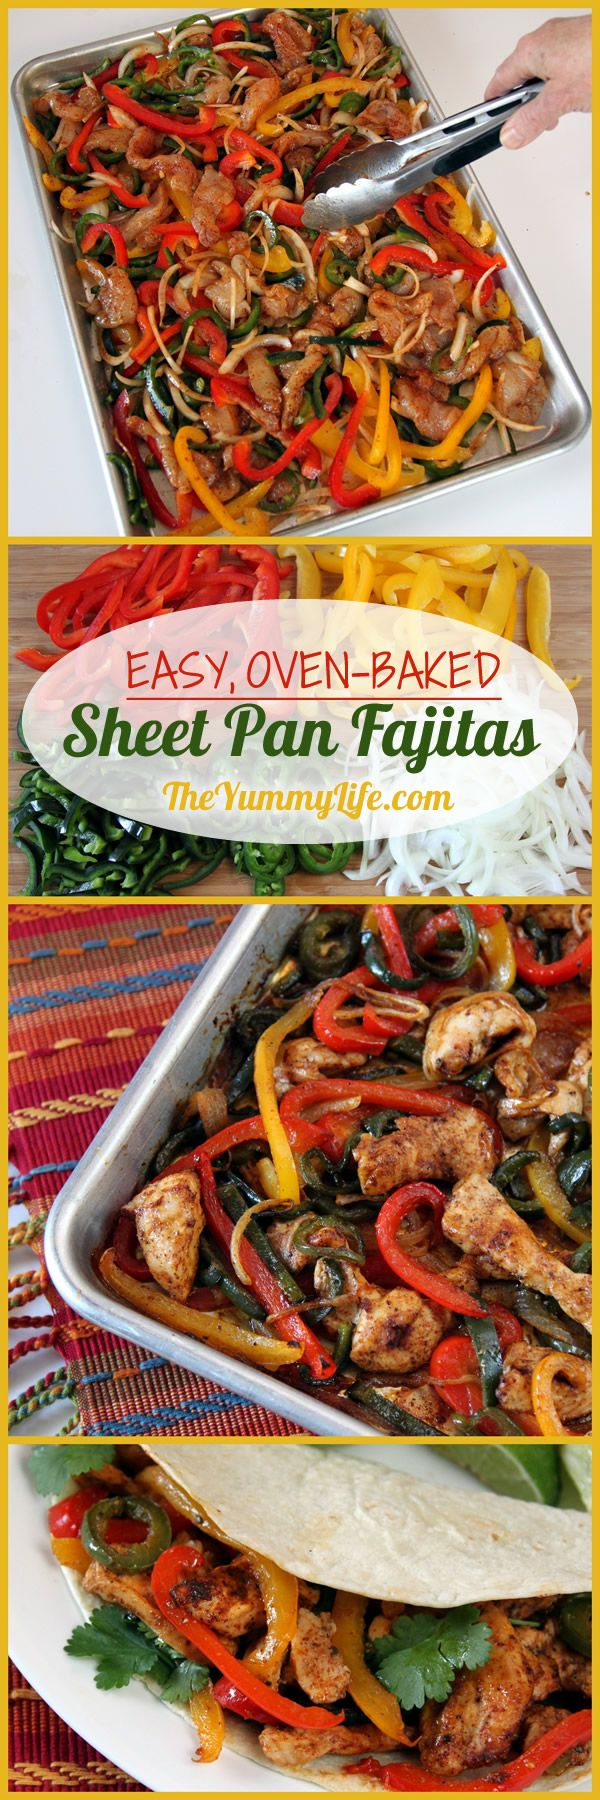 Sheet Pan Chicken Fajitas - BigOven